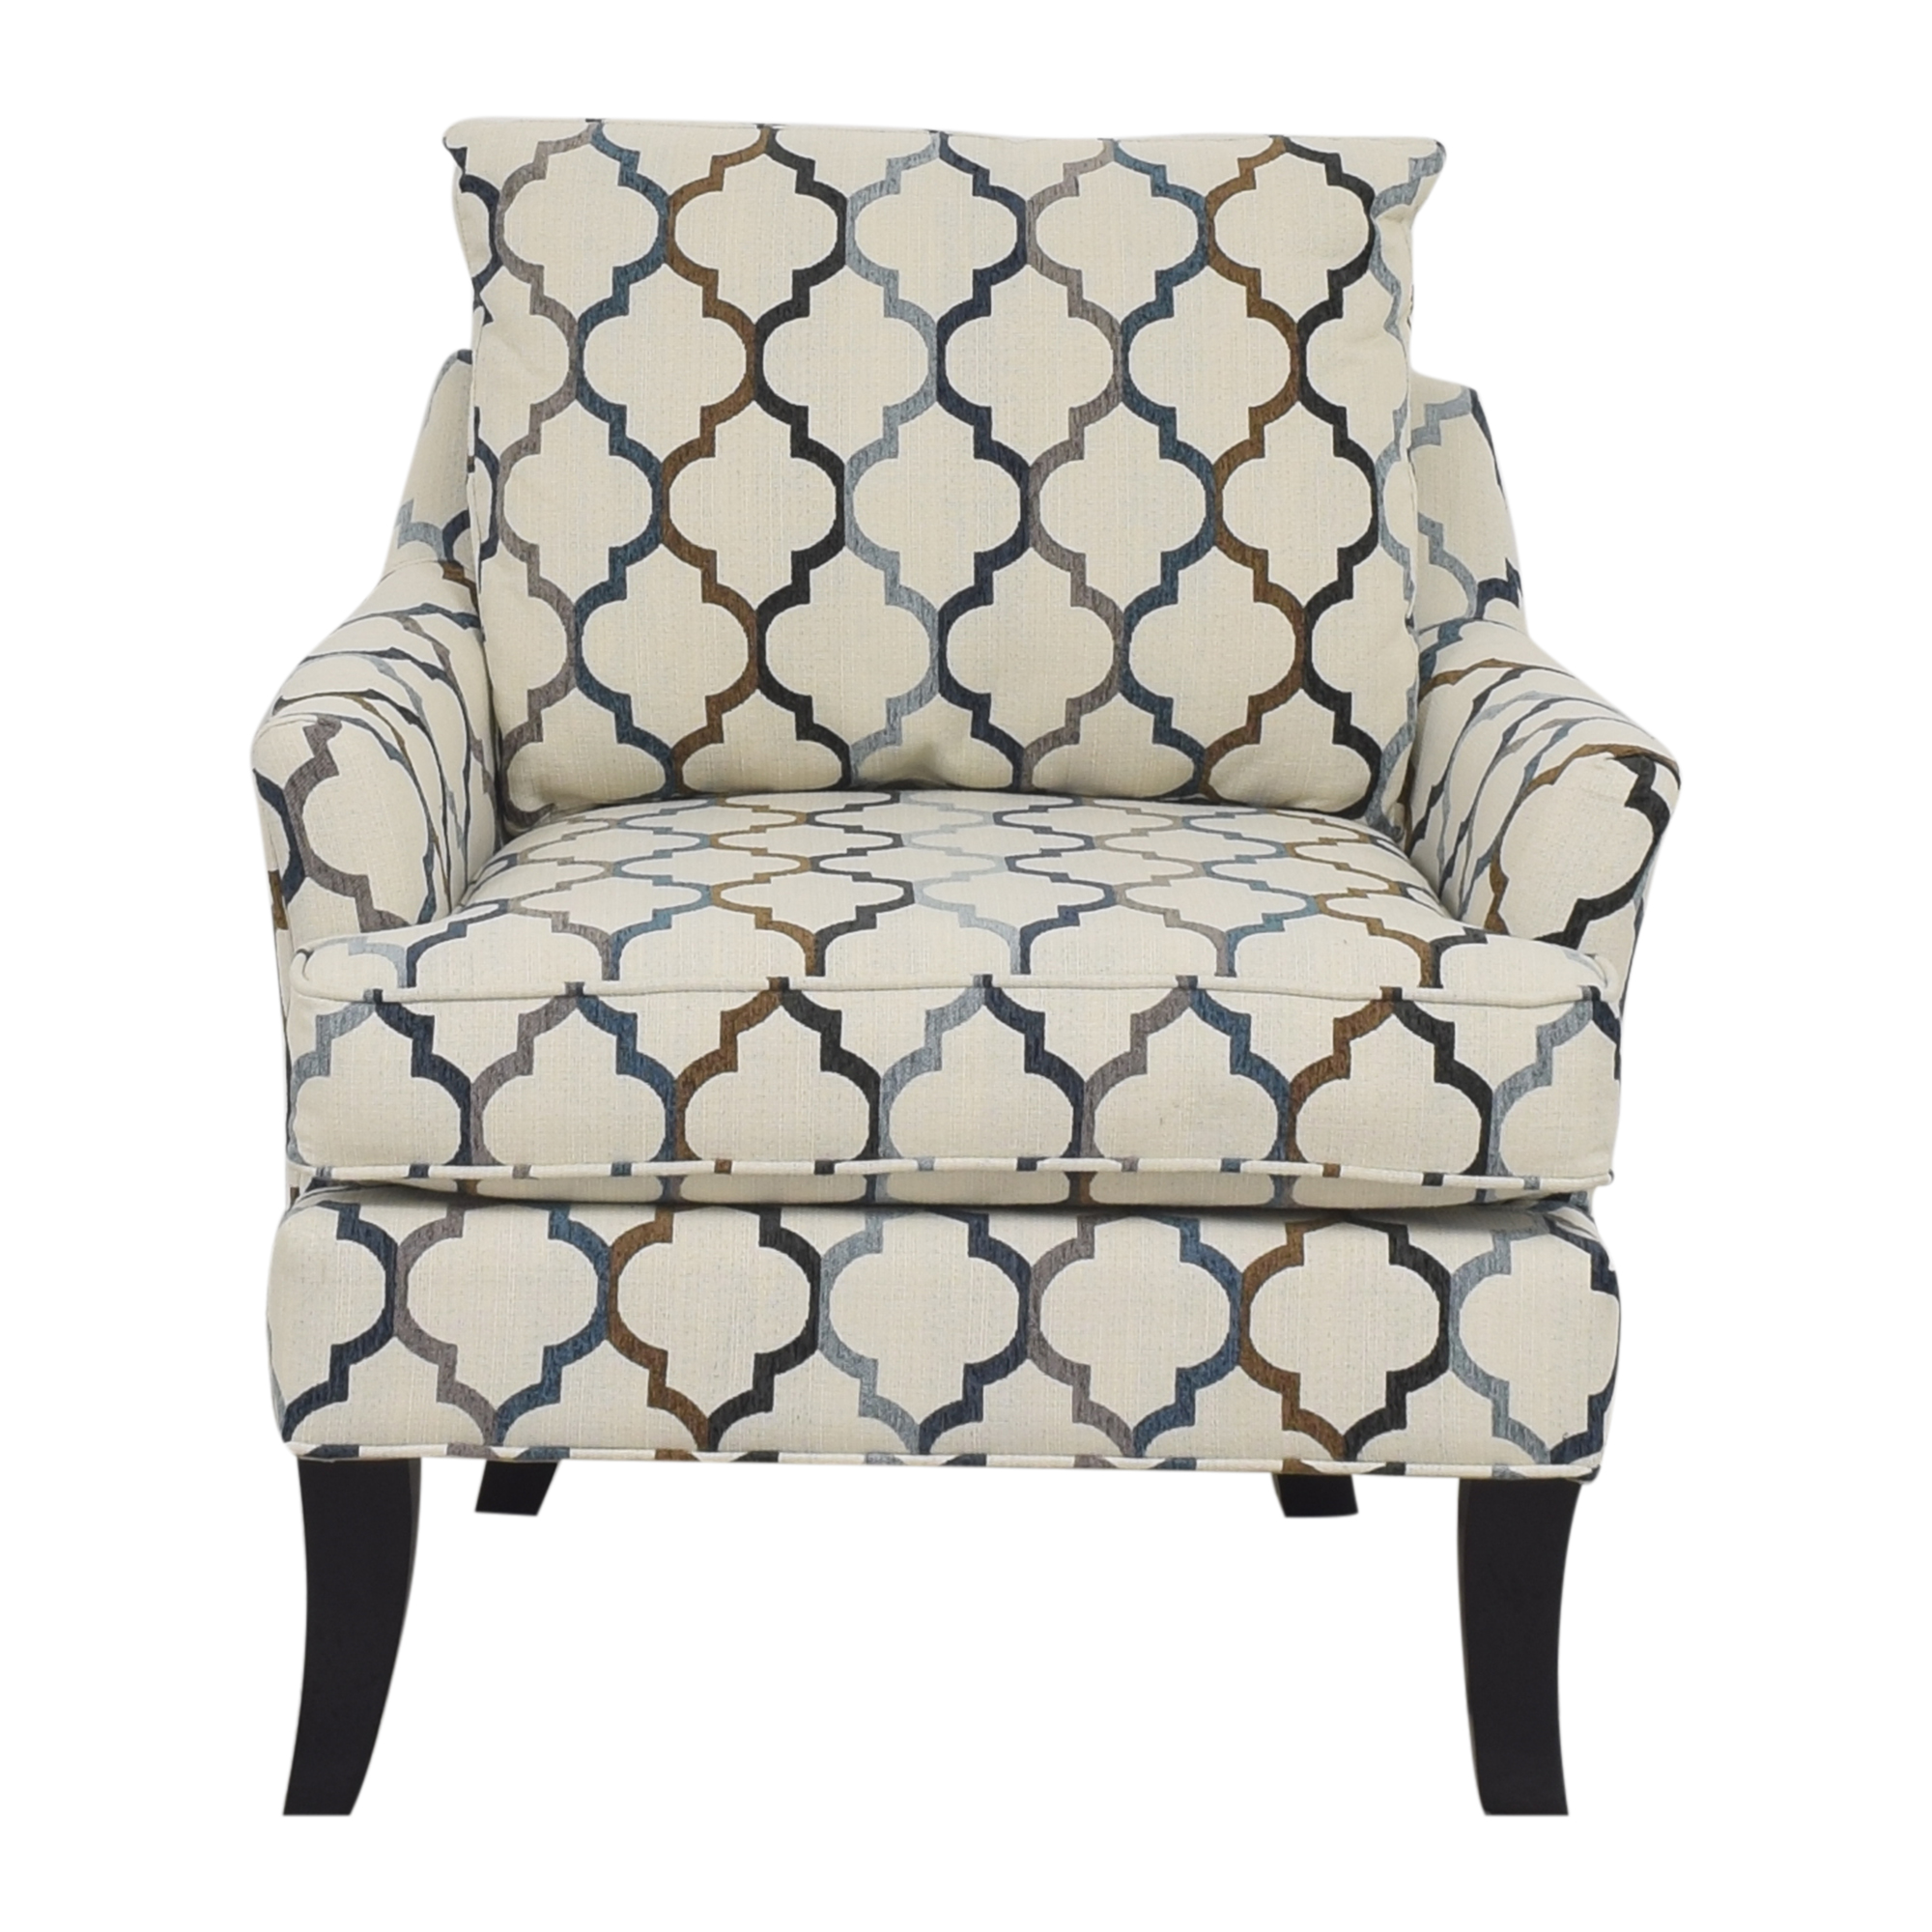 Raymour & Flanigan Raymour & Flanigan Quatrefoil Accent Chair Accent Chairs